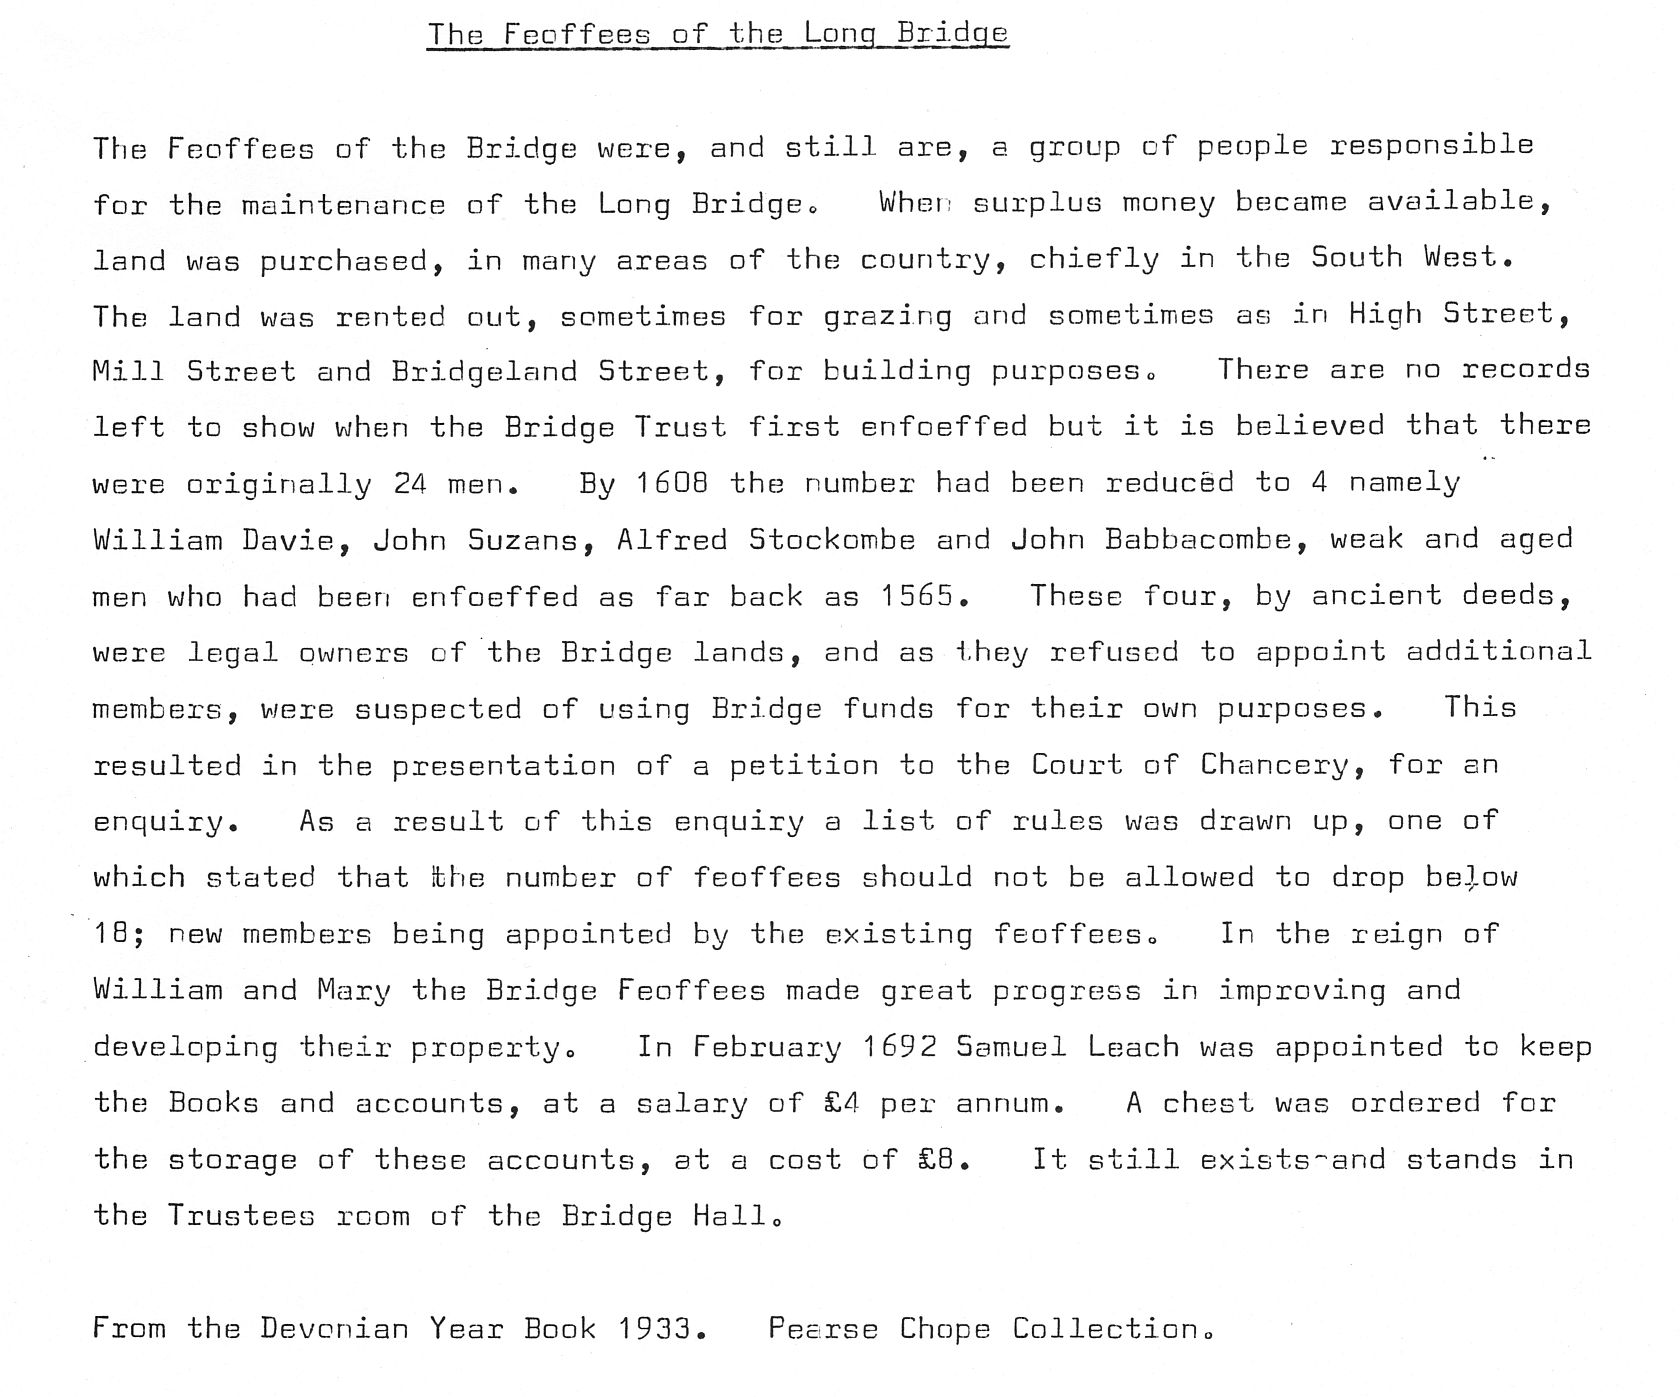 The Feoffees of the Long Bridge med